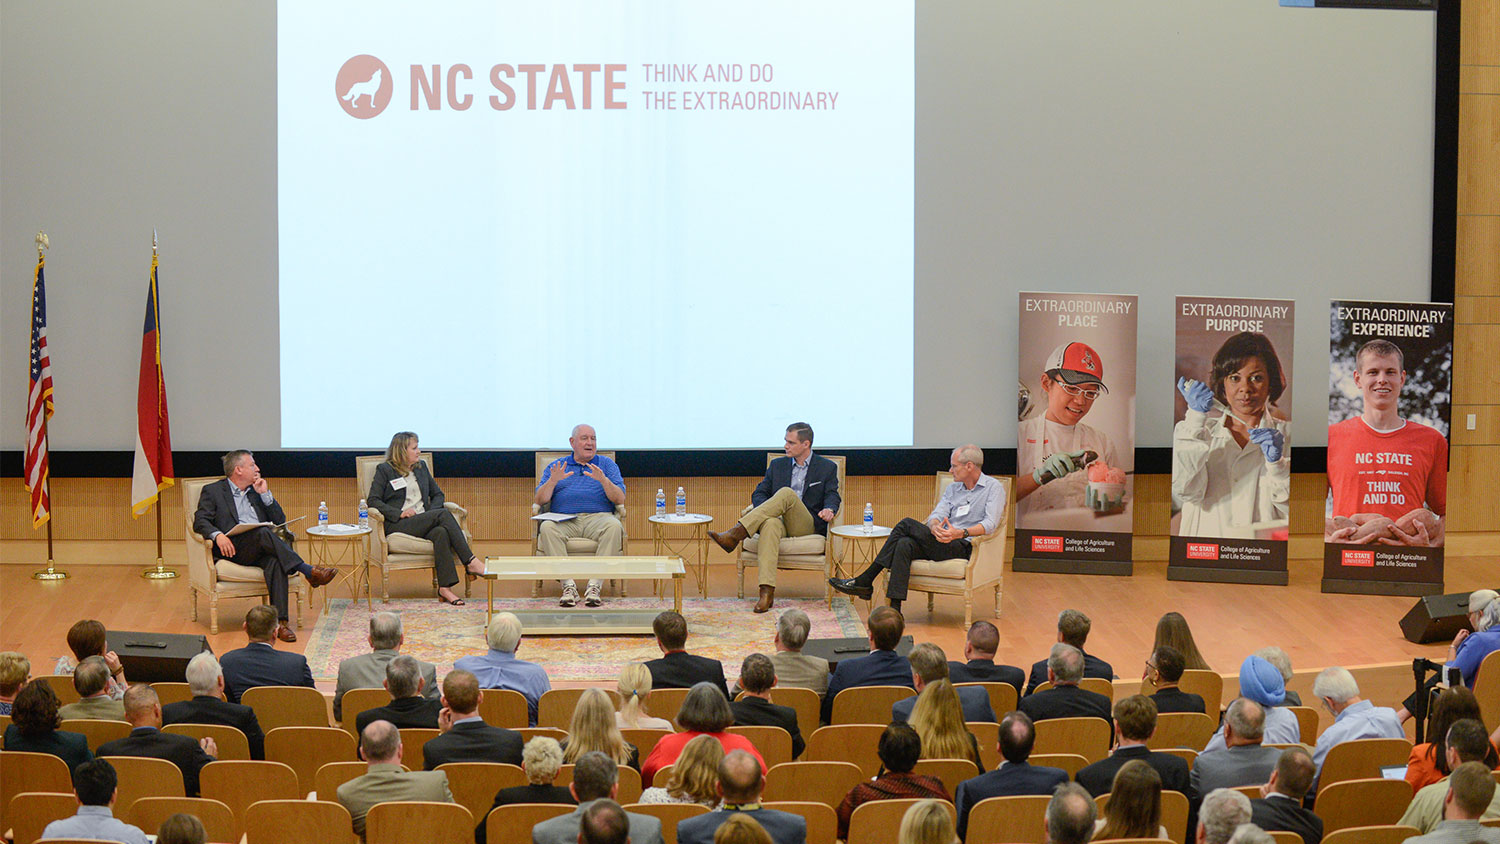 Panelists on stage in the Hunt Library auditorium.